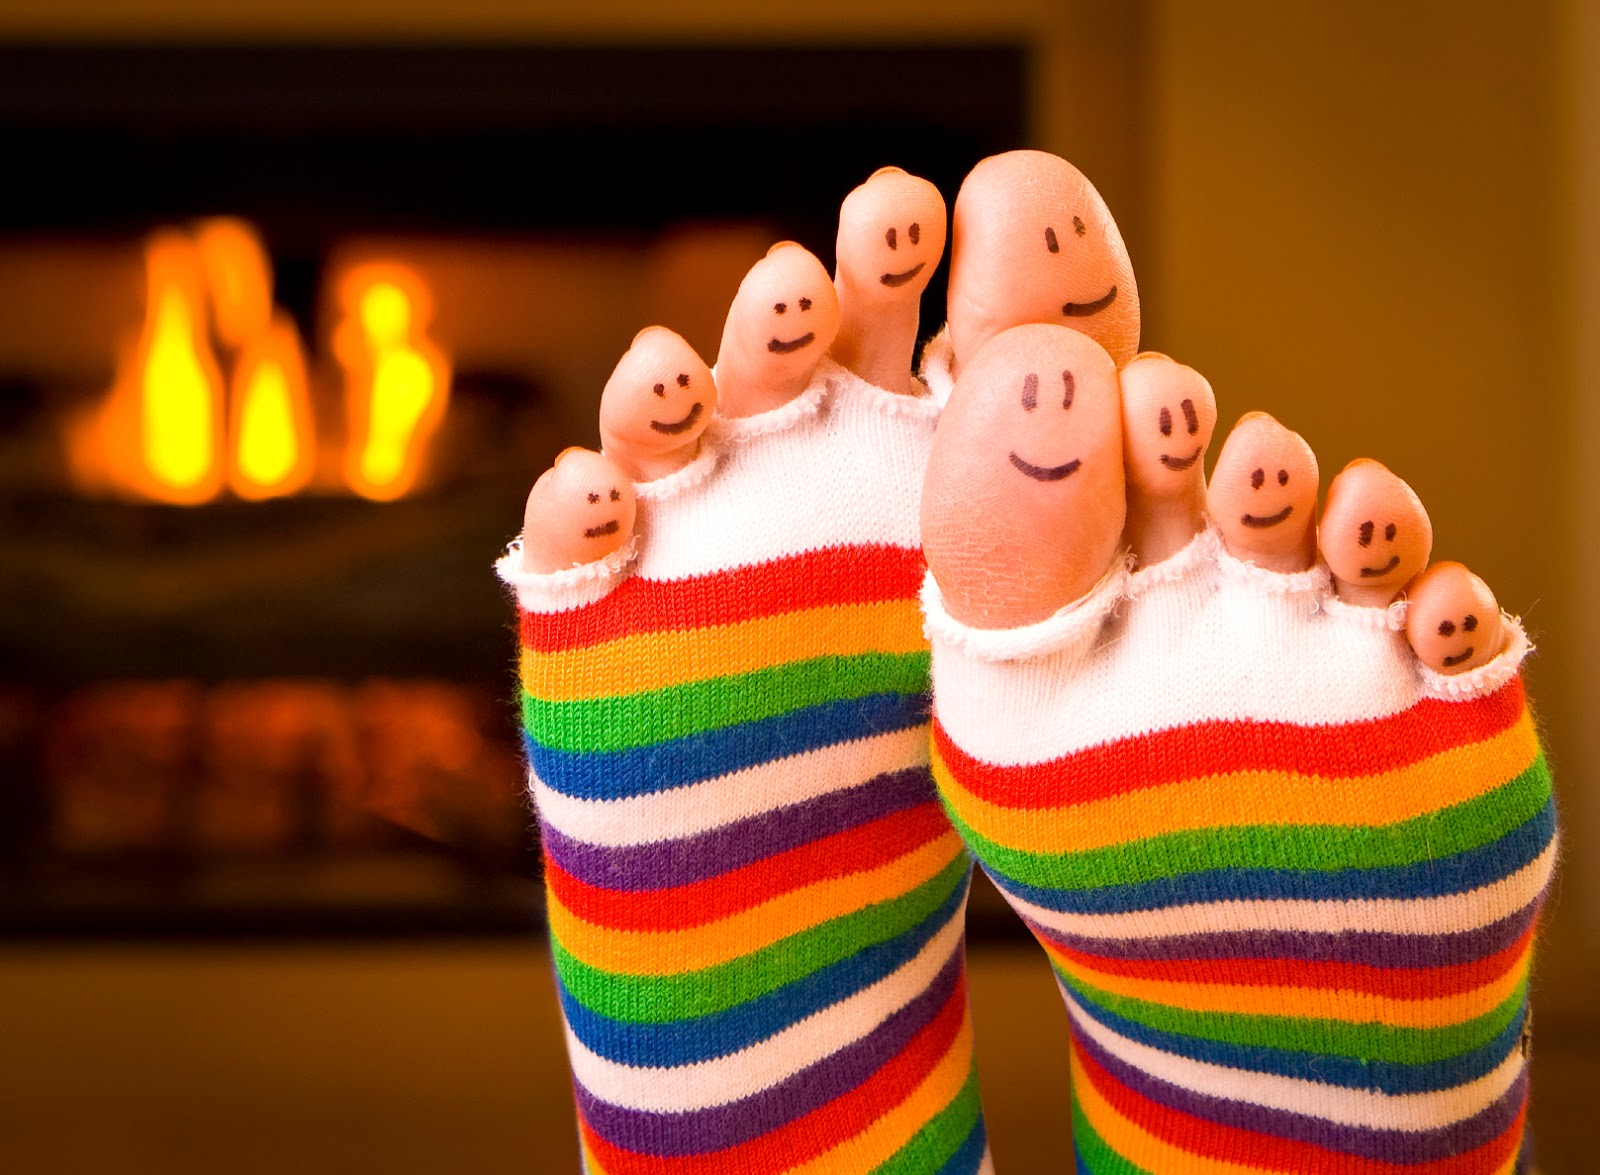 Manwill Plumbing And Heating Inc Chilly Evenings Toasty